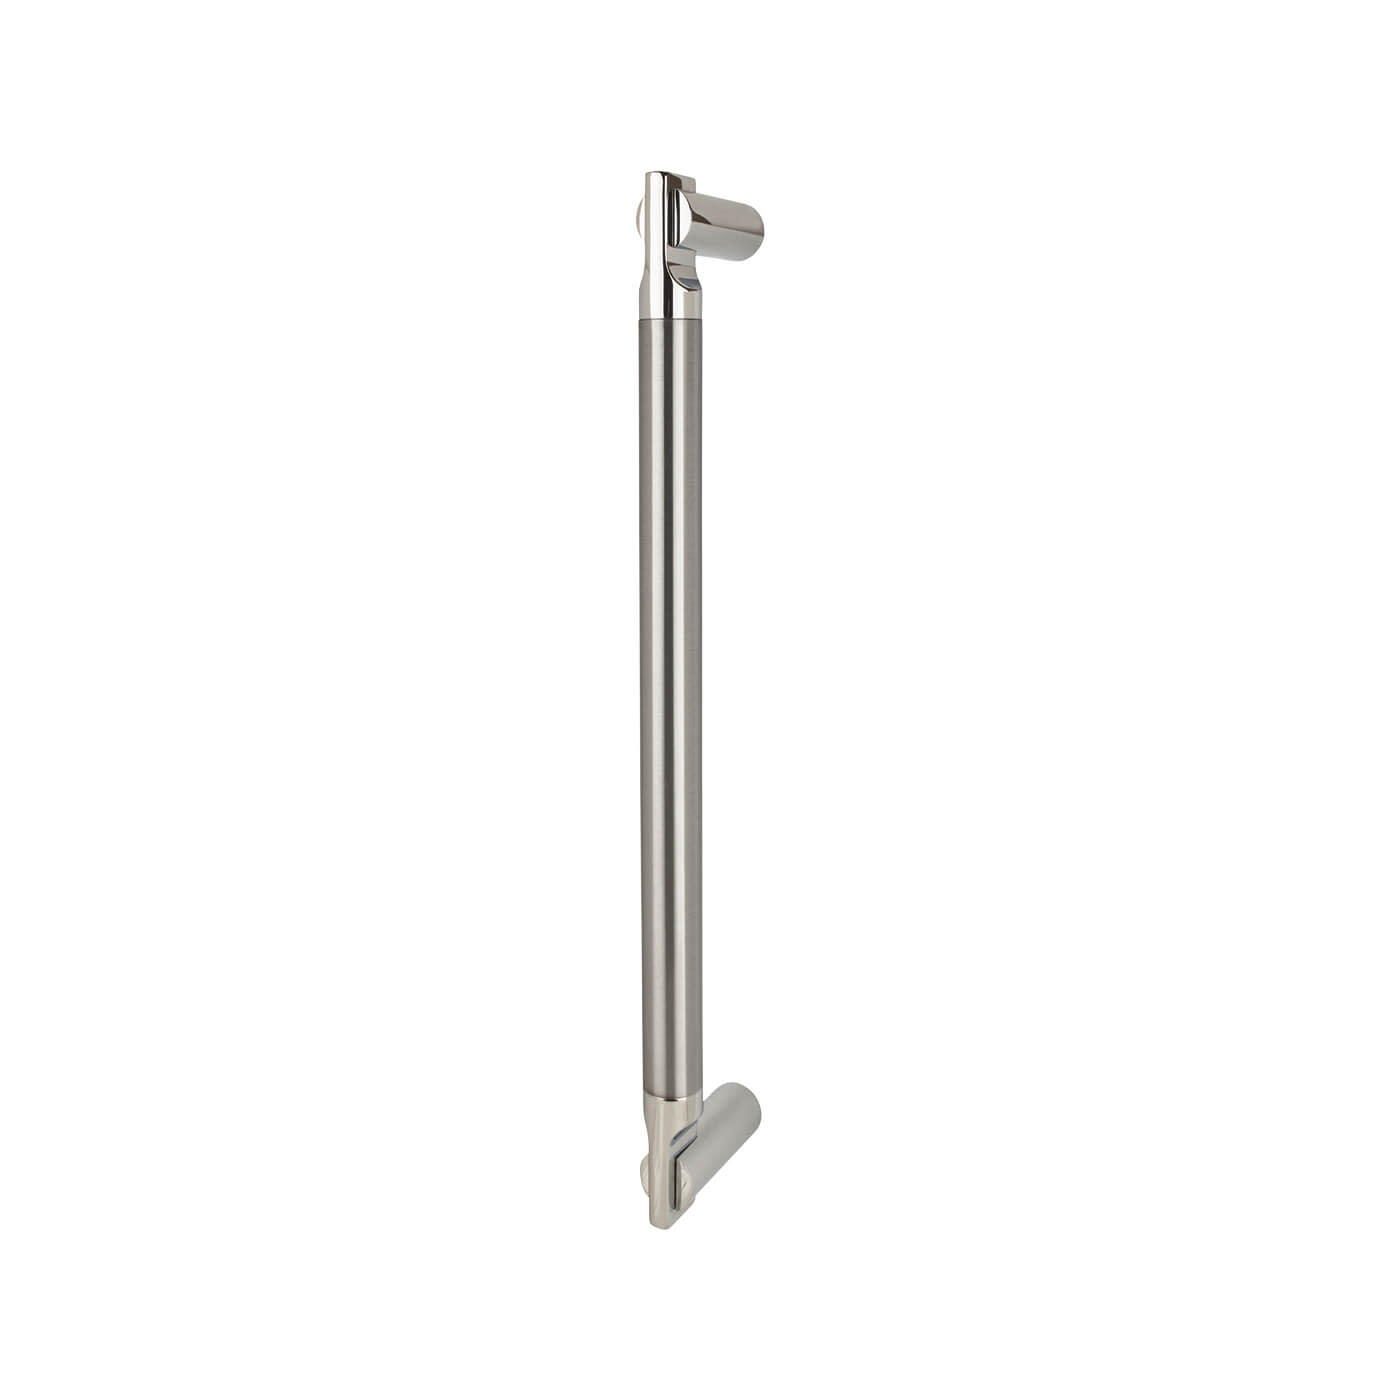 Serozzetta Azul Pull Handle 332 x 19mm - Polished Chrome /Satin Nickel)